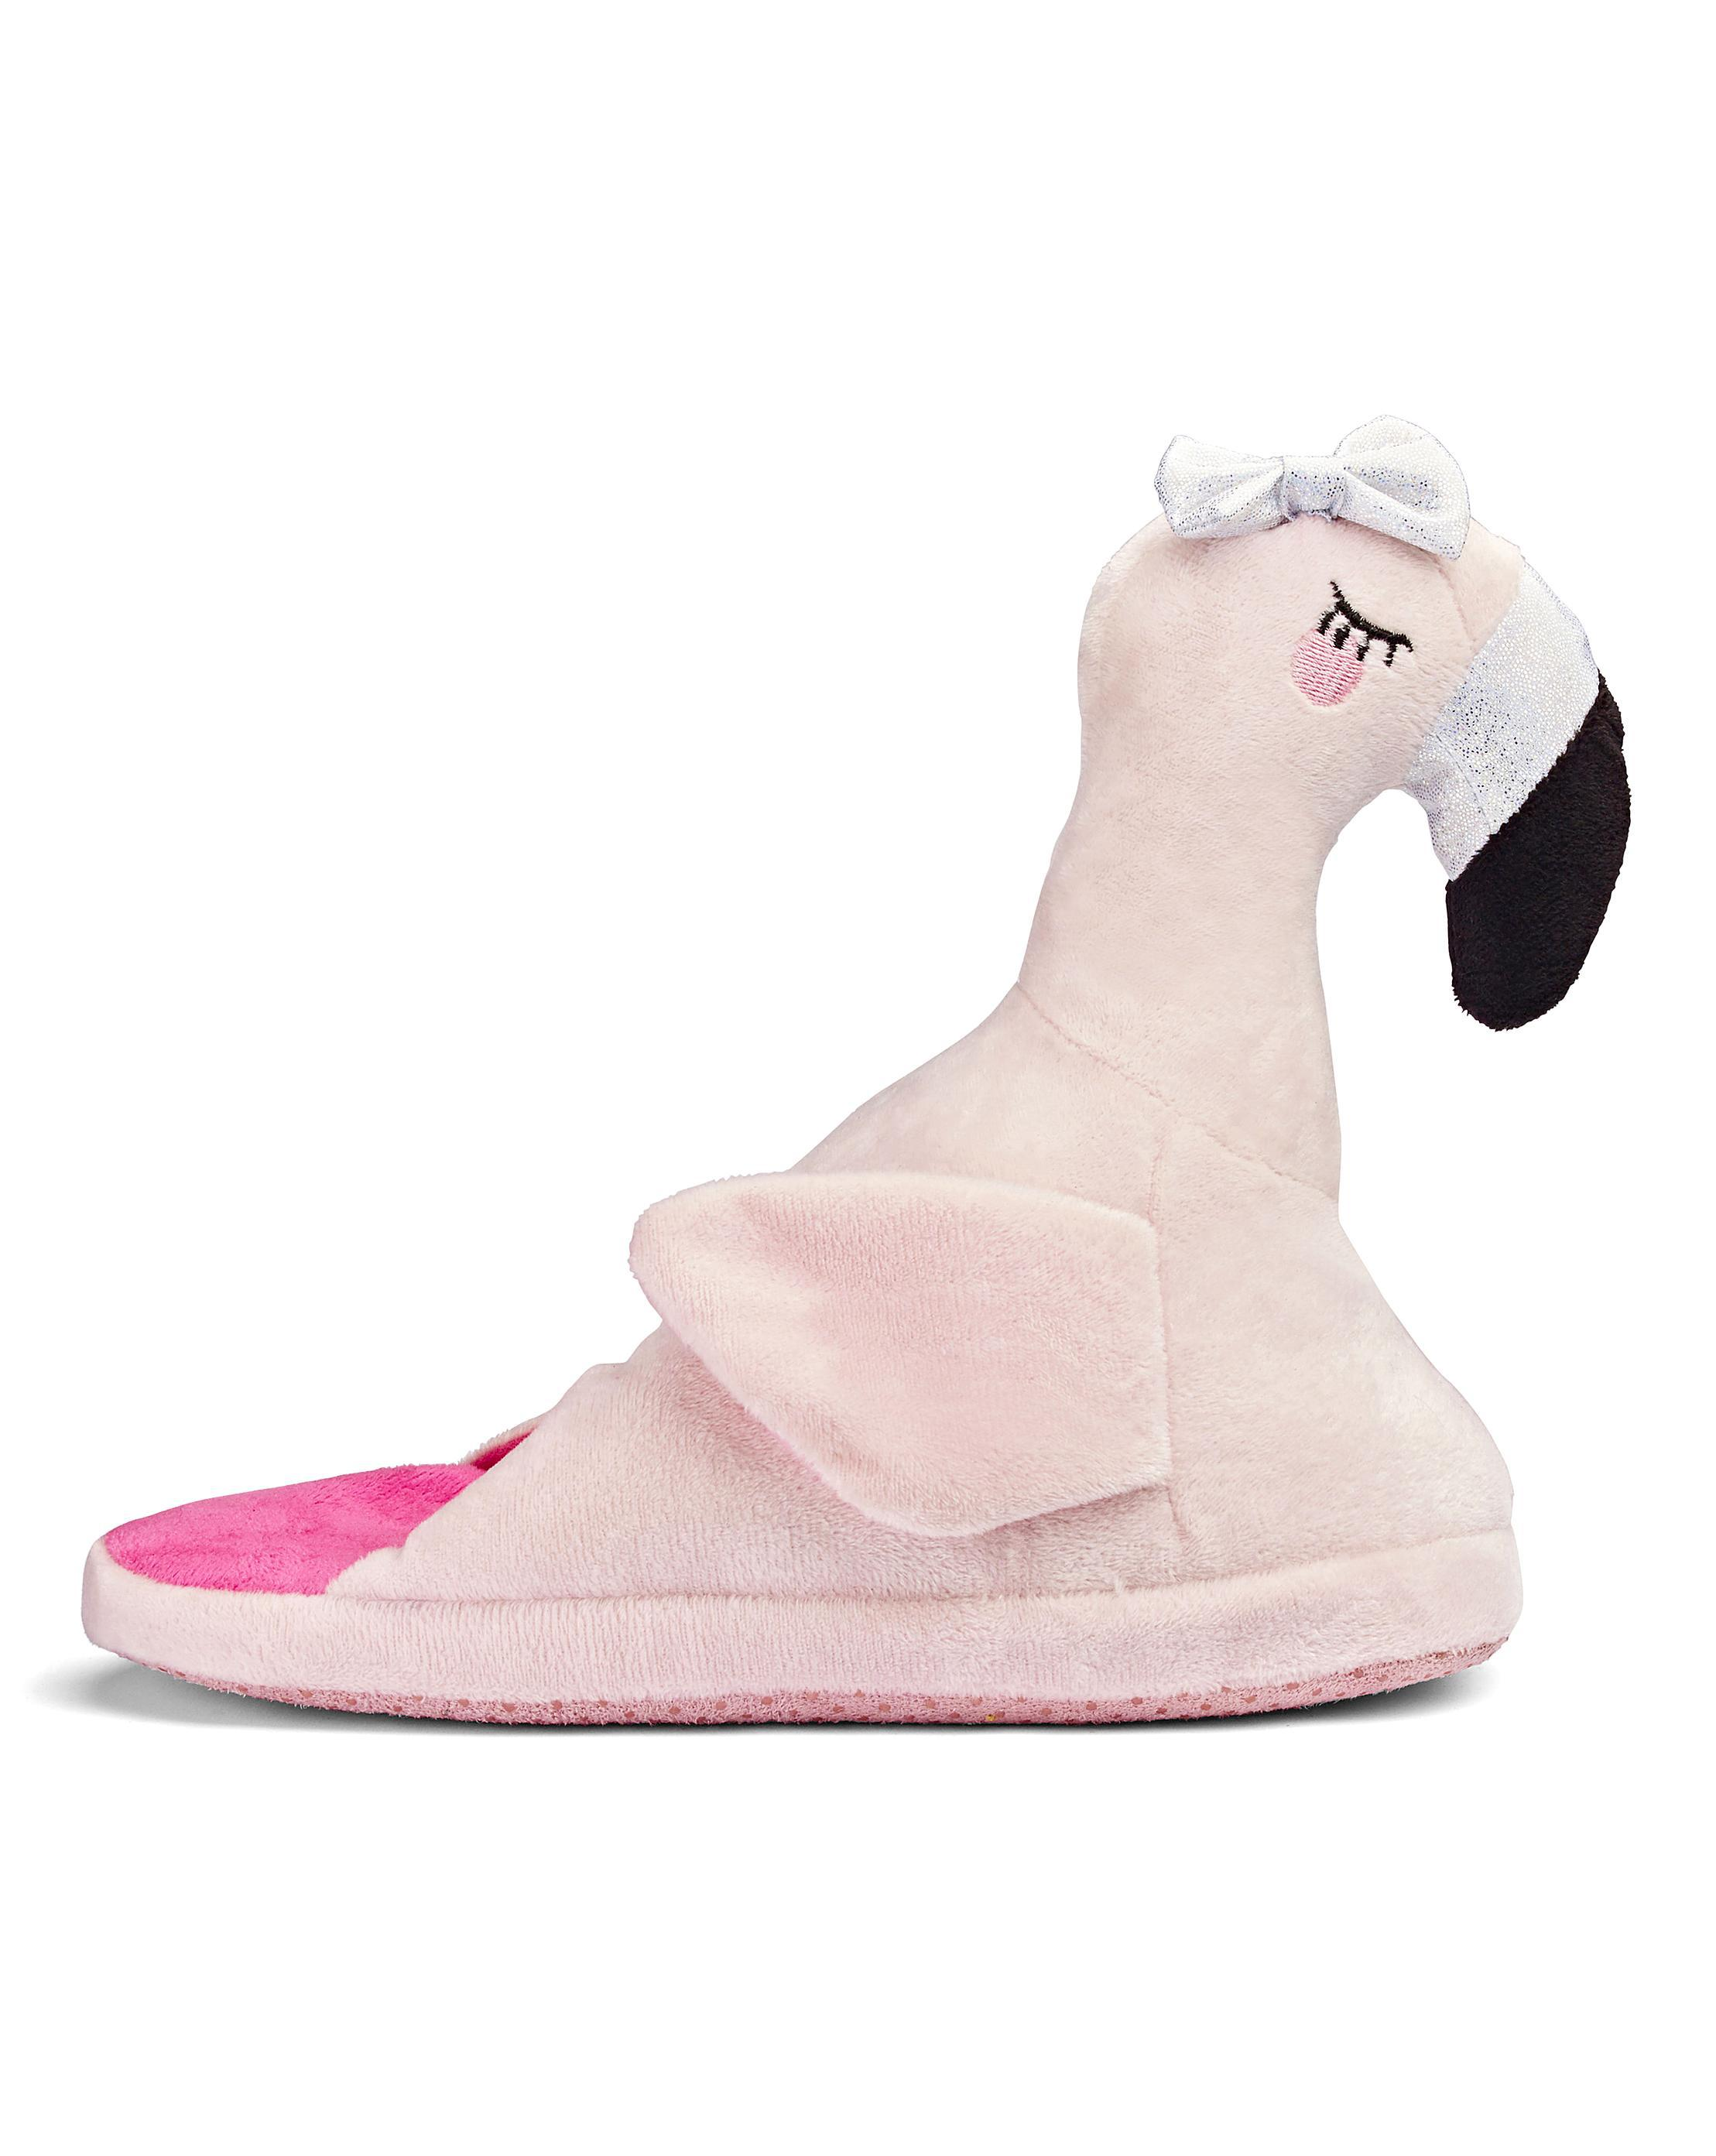 Flamingo Novelty Mule Slipper discount nicekicks discount websites new styles cheap online vzucV0Qj